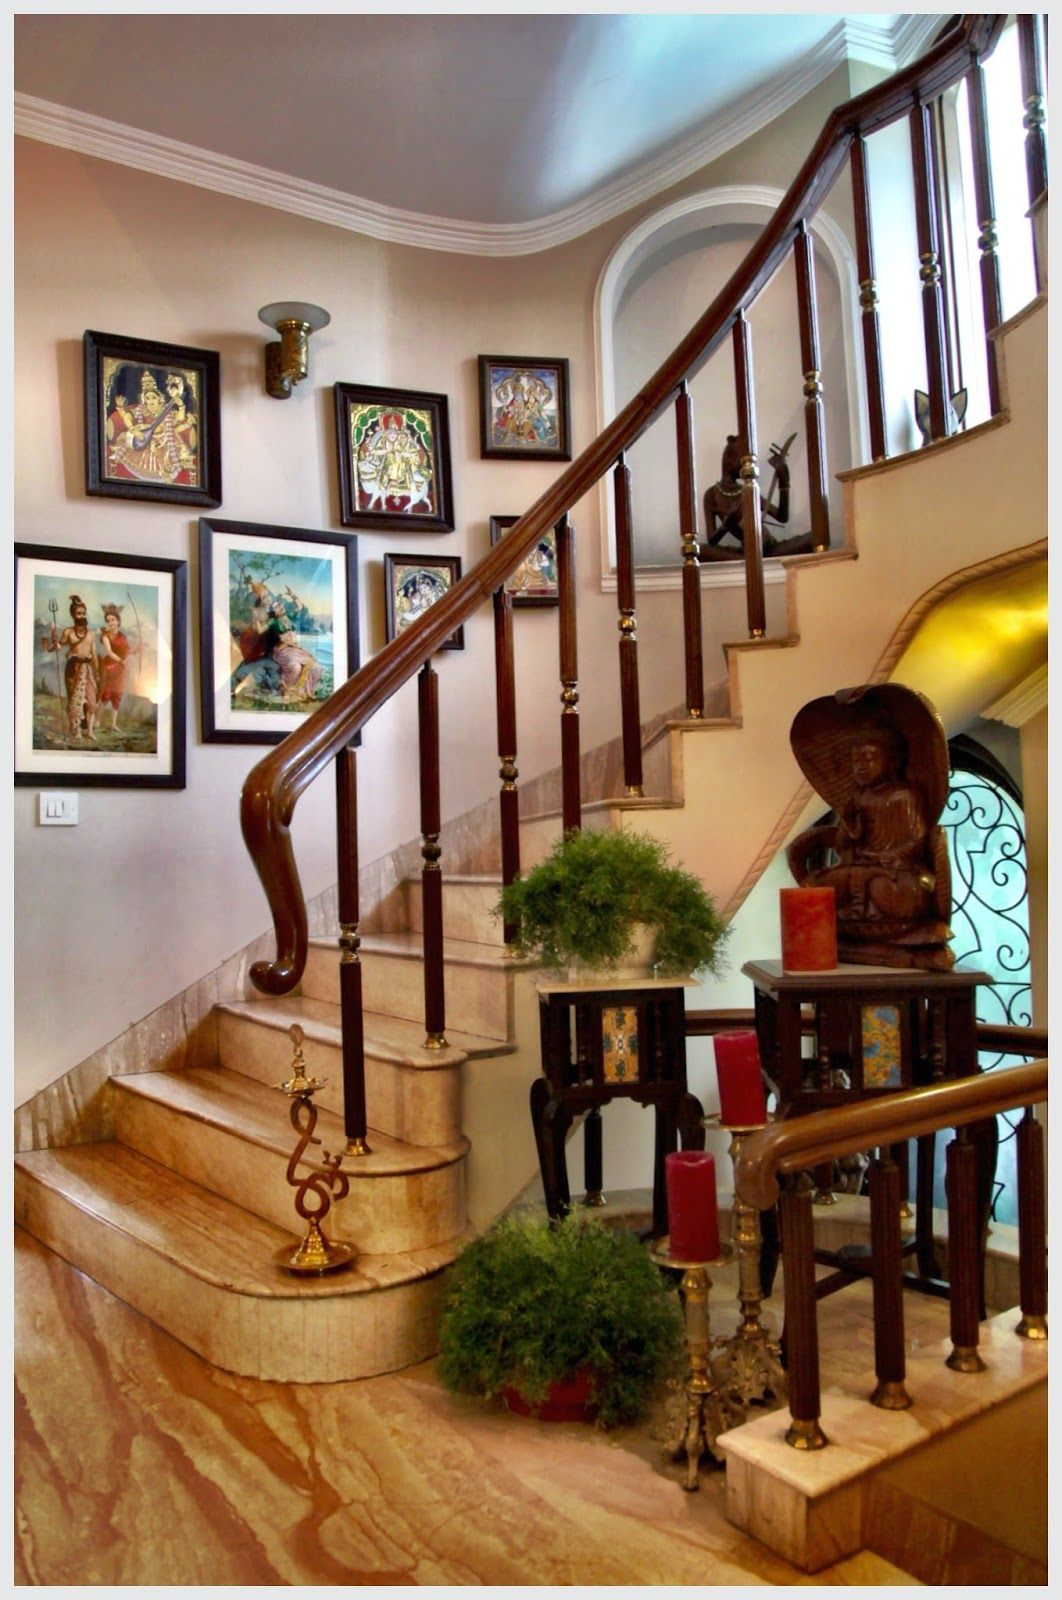 The Art Full Home Home Tour Indian Home Decor Decor Indian Home Interior